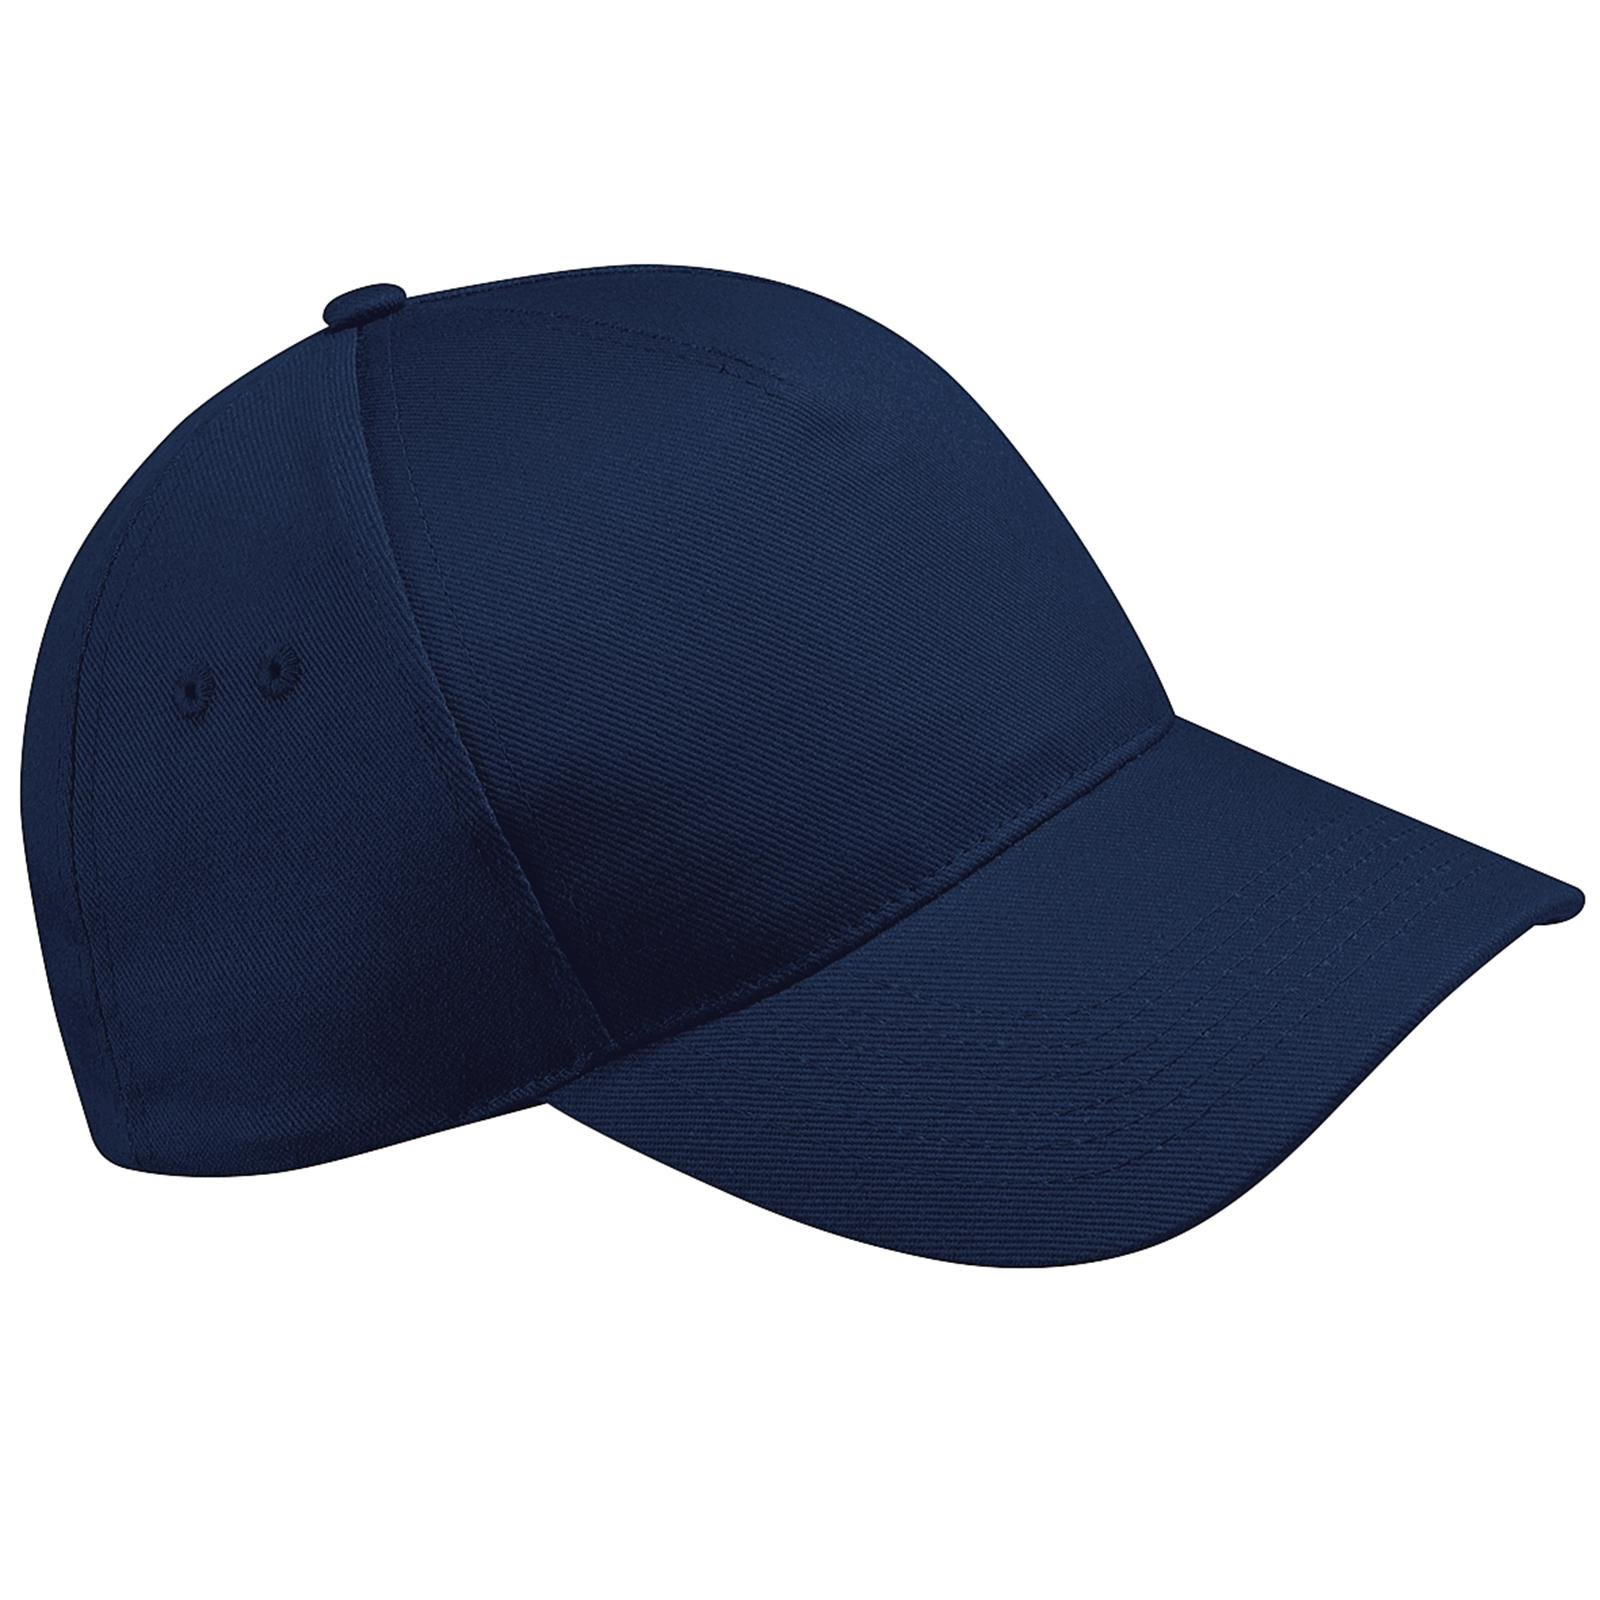 Cap - Baseball style, brushed cotton, unstructured, assorted colors for Base/Trim; for Embroidery of logo up to 7-colors (provided by district/BOCES)